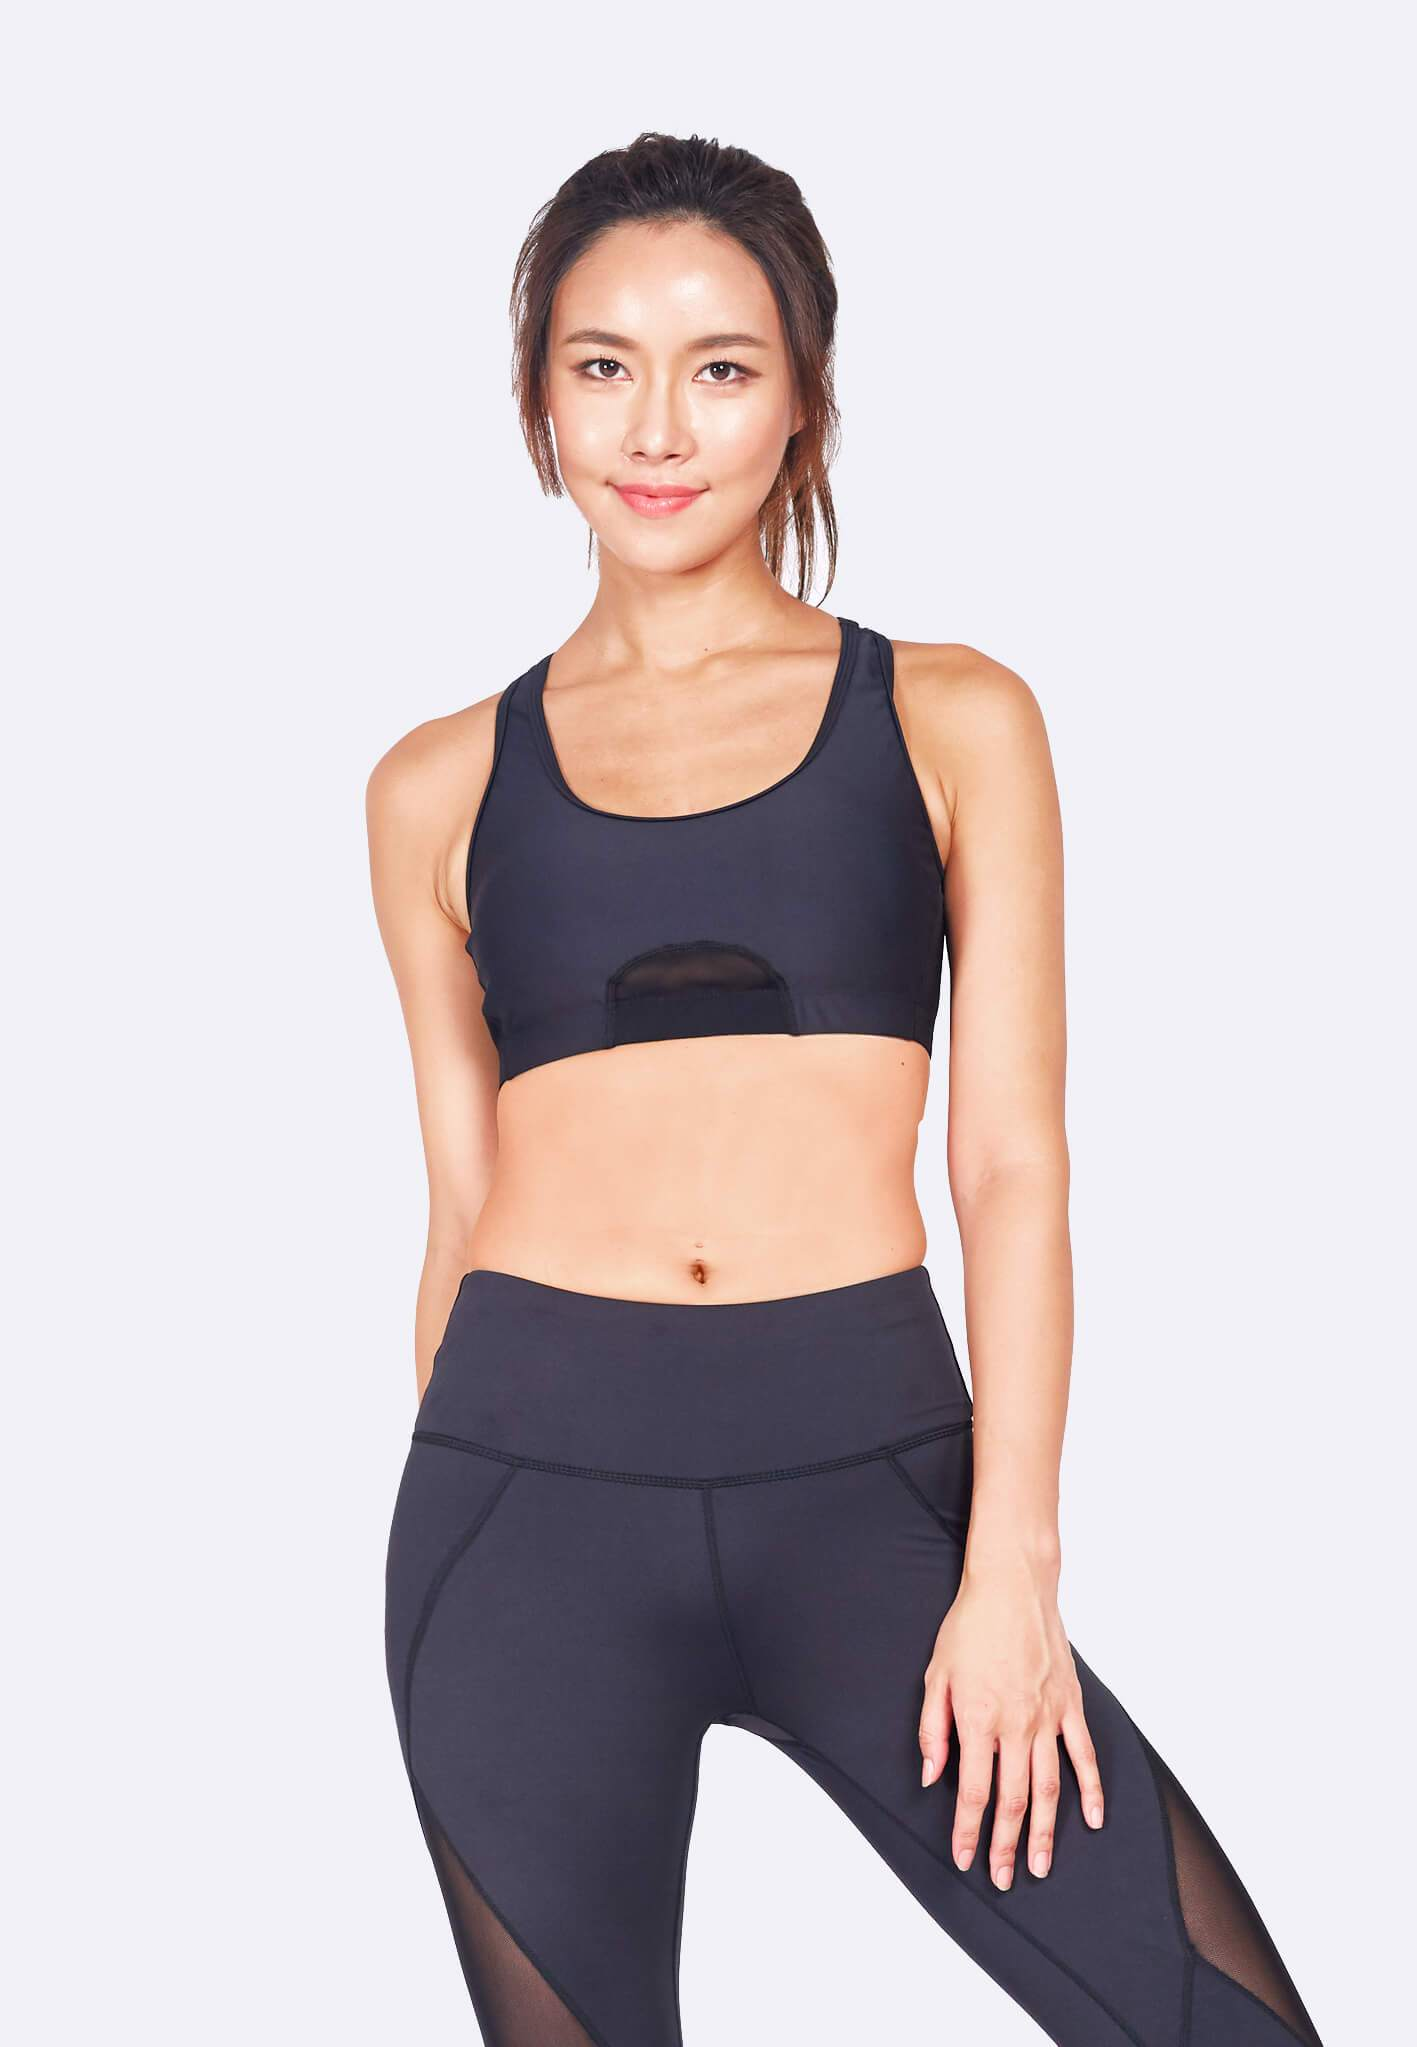 Knockout Racerback Sports Bra in Black - FUNFIT